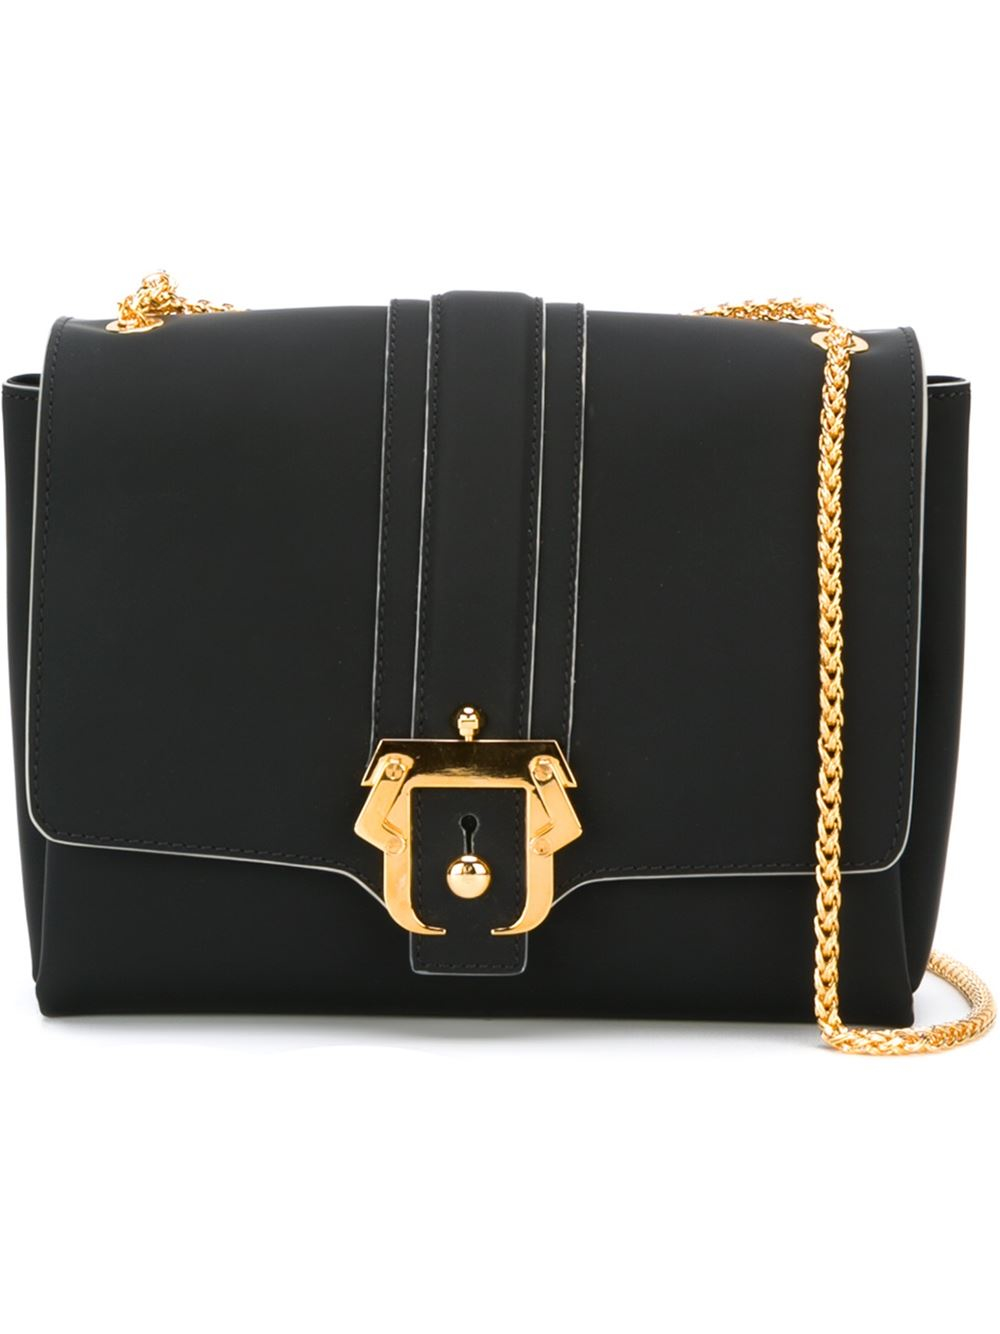 buckle detail shoulder bag - Black Paula Cademartori H6kdNdUuC3